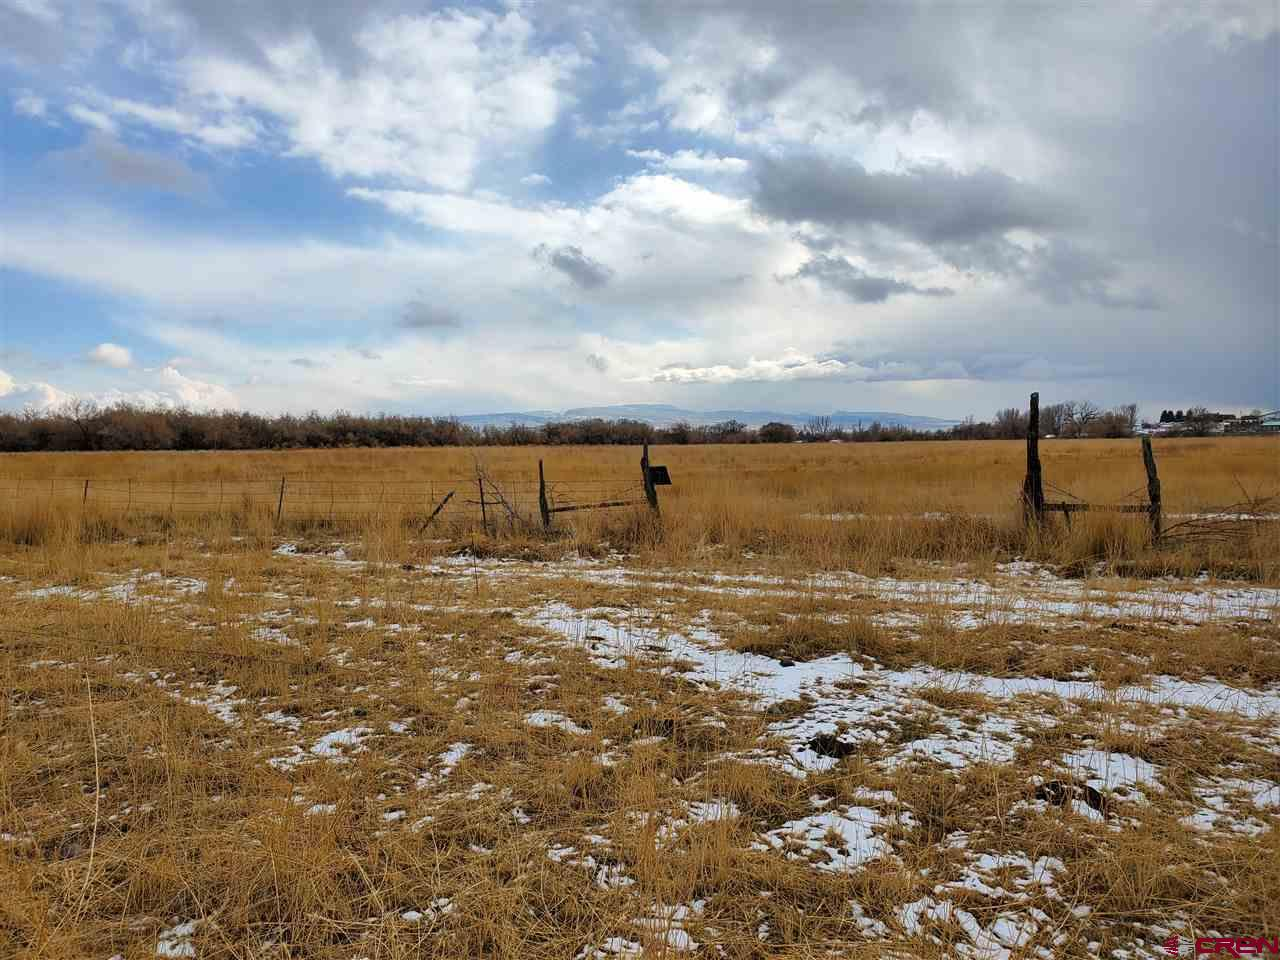 92 acres south of Eckert.  OCID water and Fogg ditch.  Aprox. 76 irrigated acres.  Access off of Highway 65 or 2100 rd.  Good development potential.